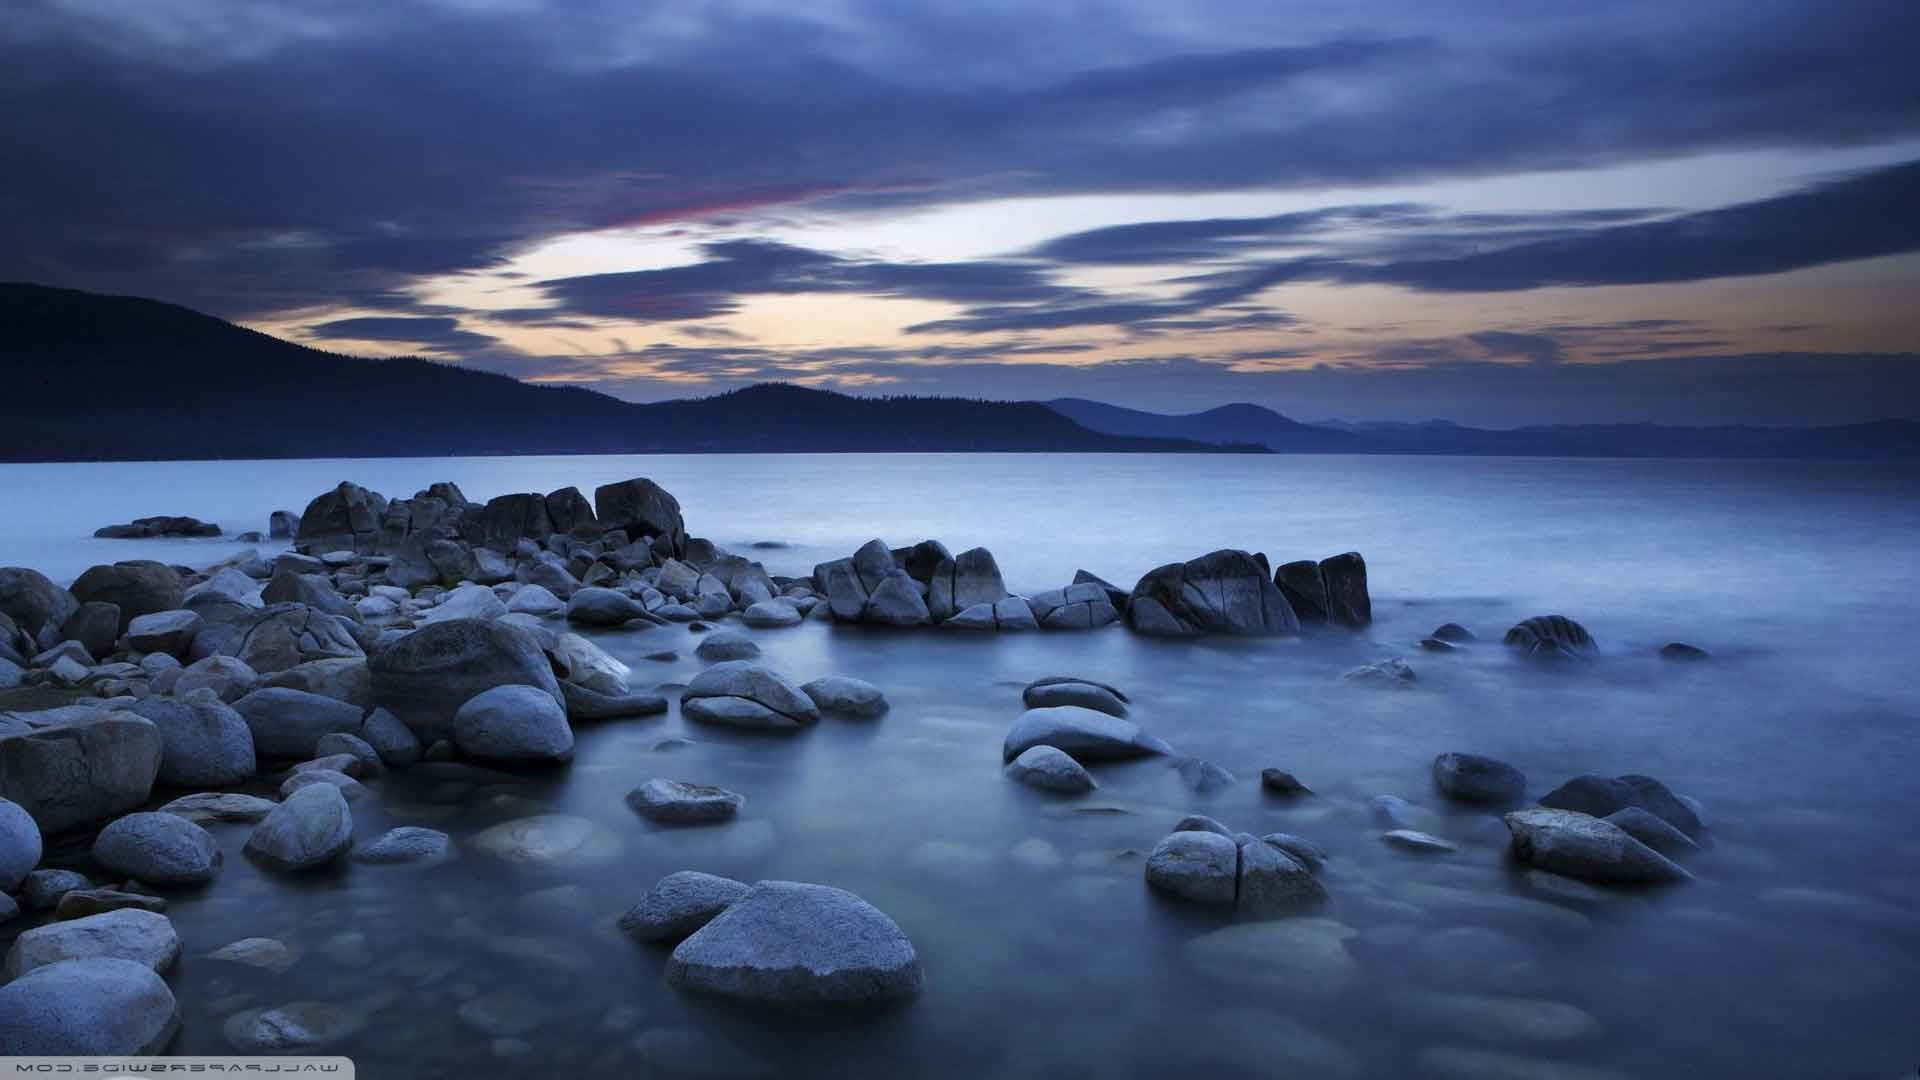 1920x1080 Sky Water Rocks Evening HD Nature Backgrounds For Mac